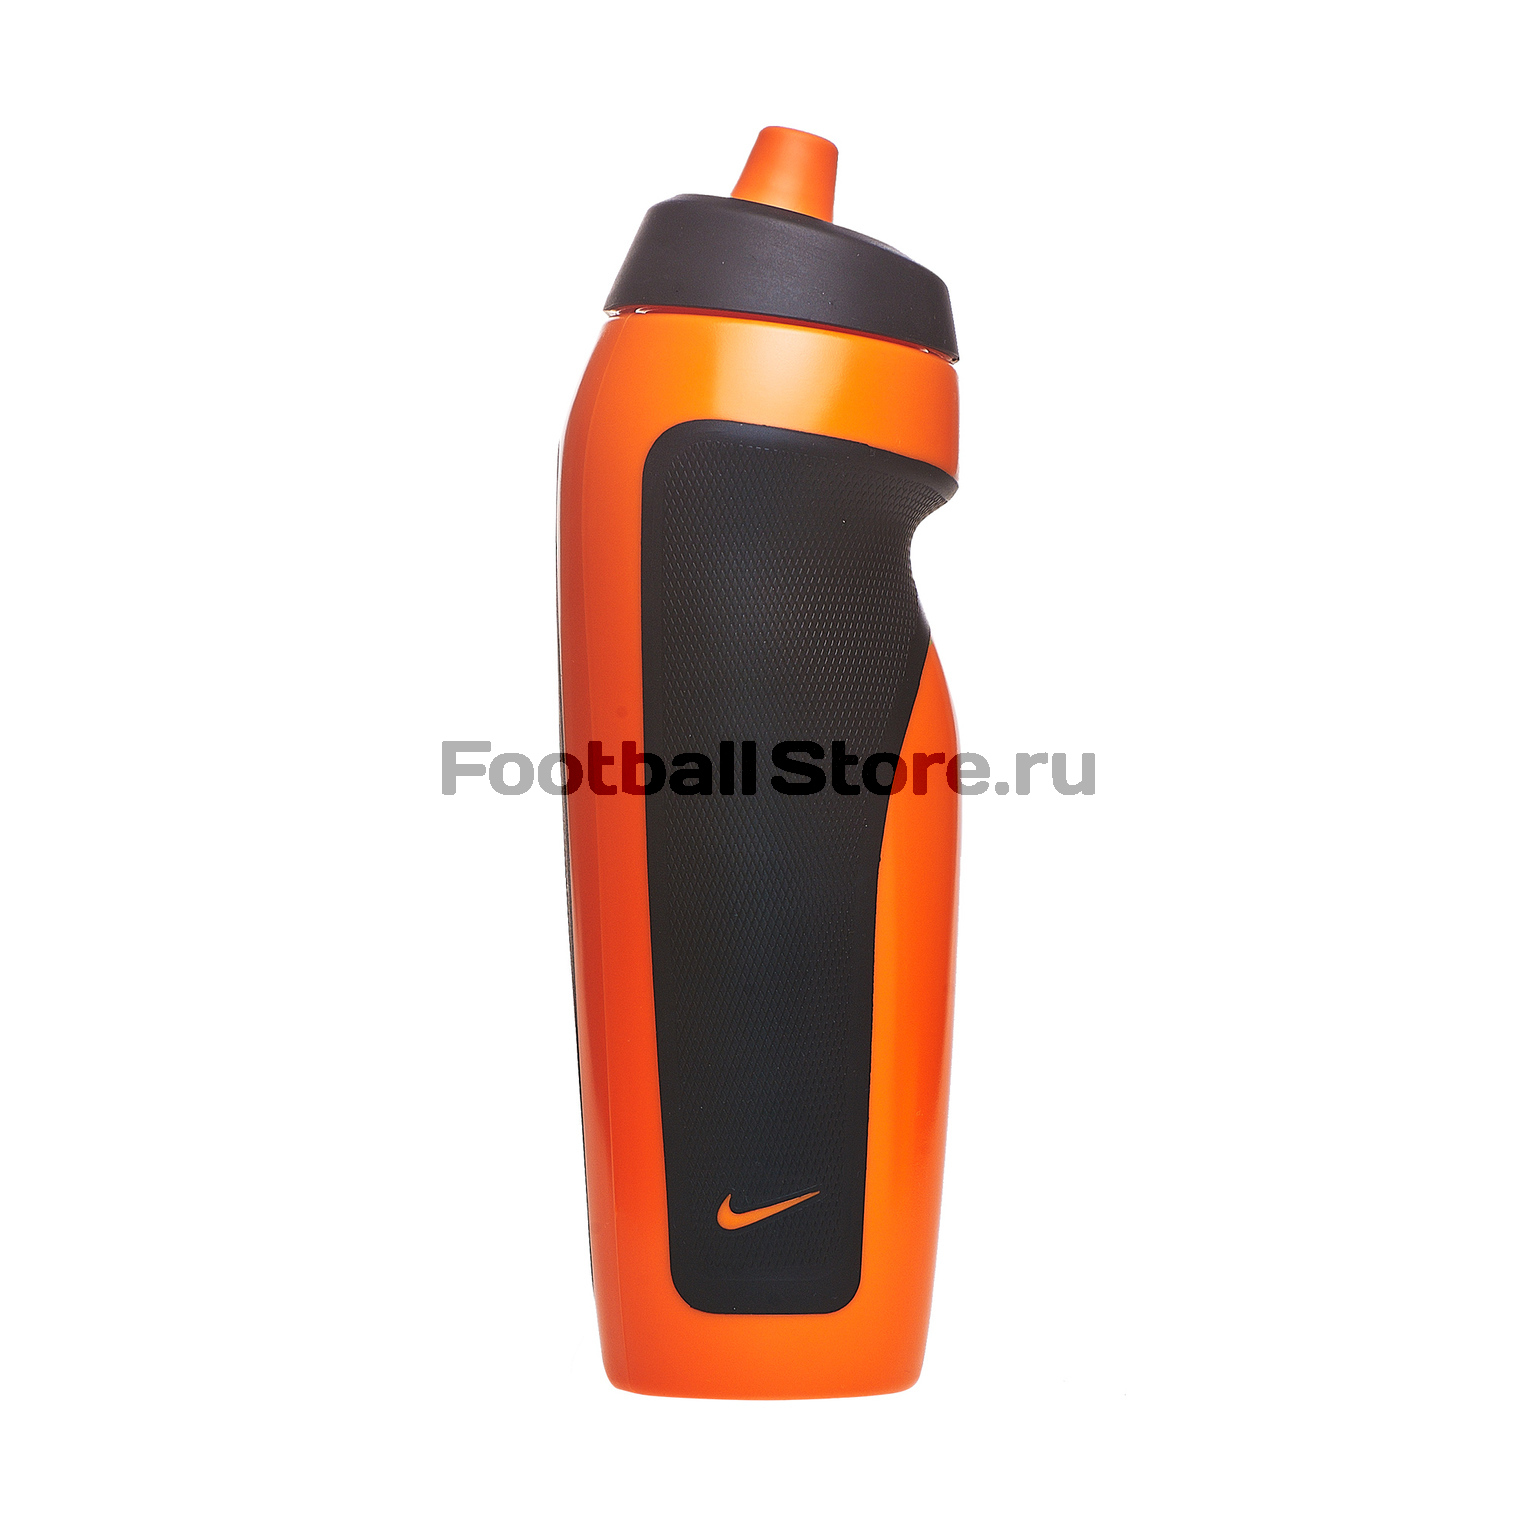 Бутылка для воды Nike Sport Water 9.341.009.710 nike nike sport water 590ml bottle